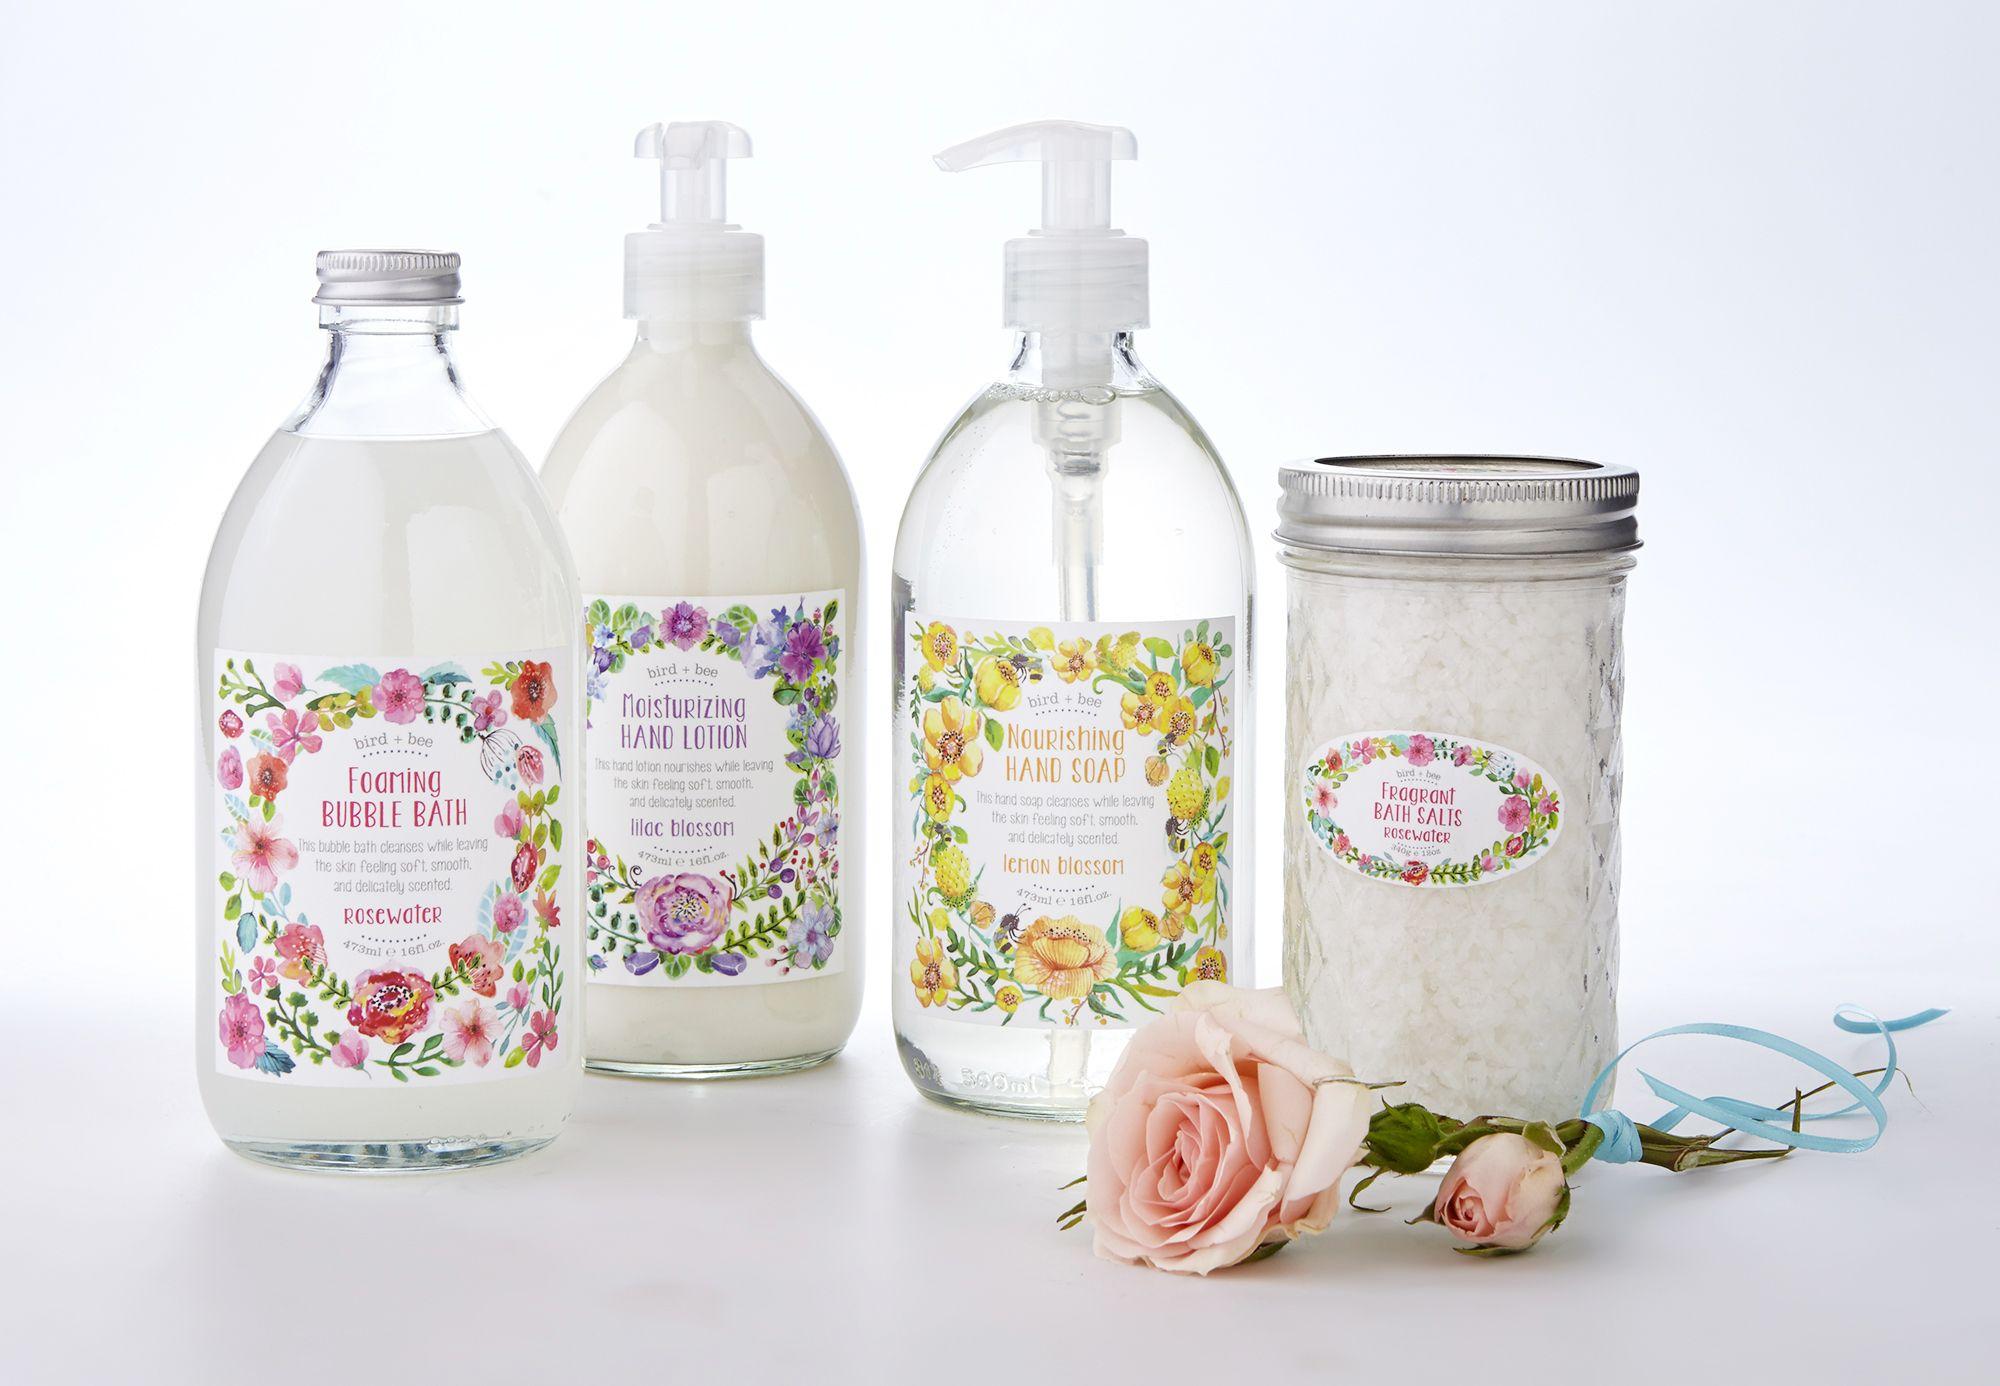 Products Styling by Lindsay Upson at Artists' Services